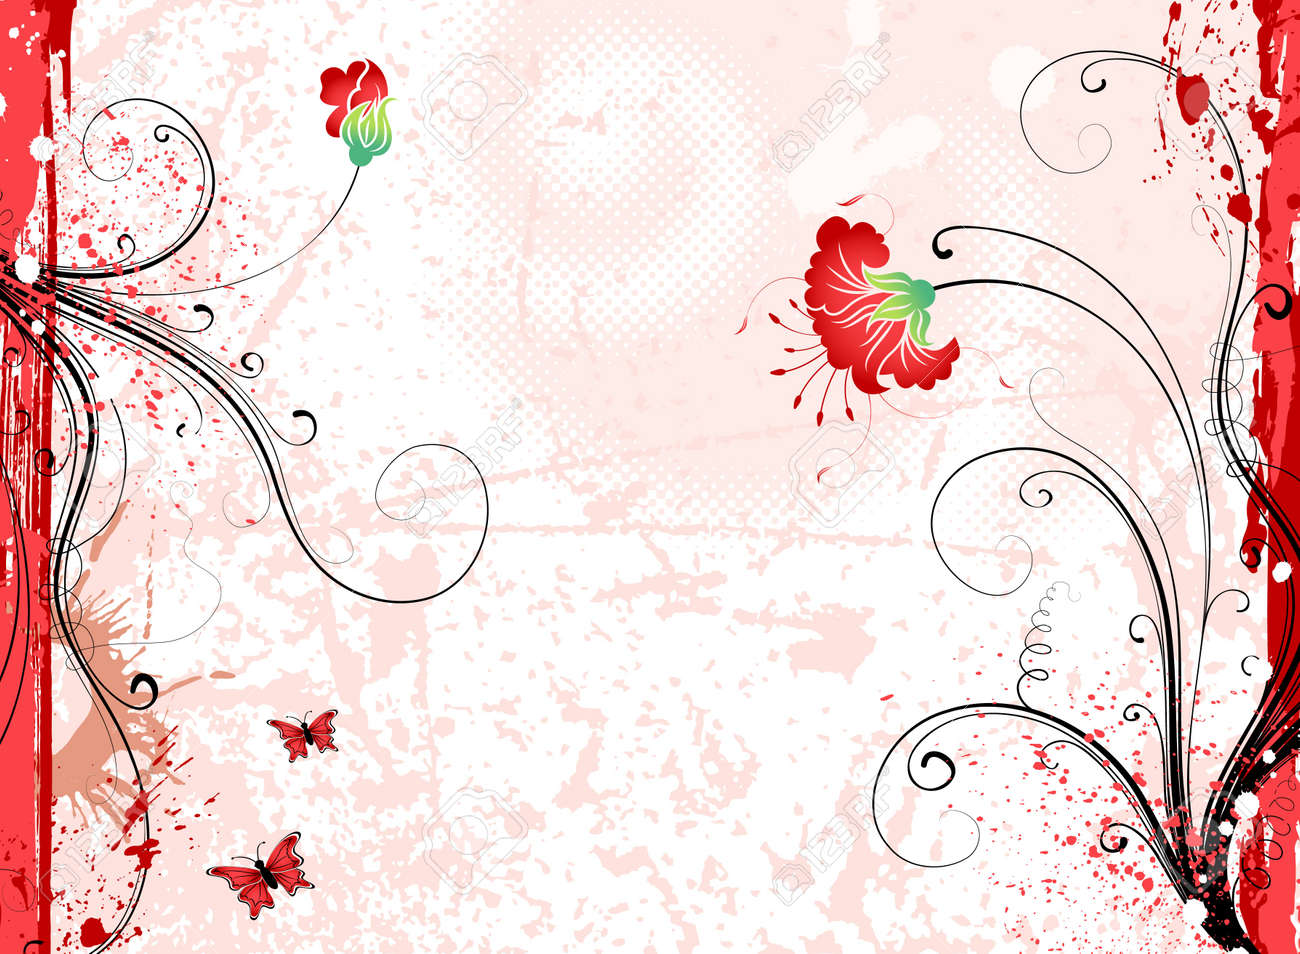 Grunge paint flower background with butterfly, element for design, vector illustration Stock Illustration - 1222361